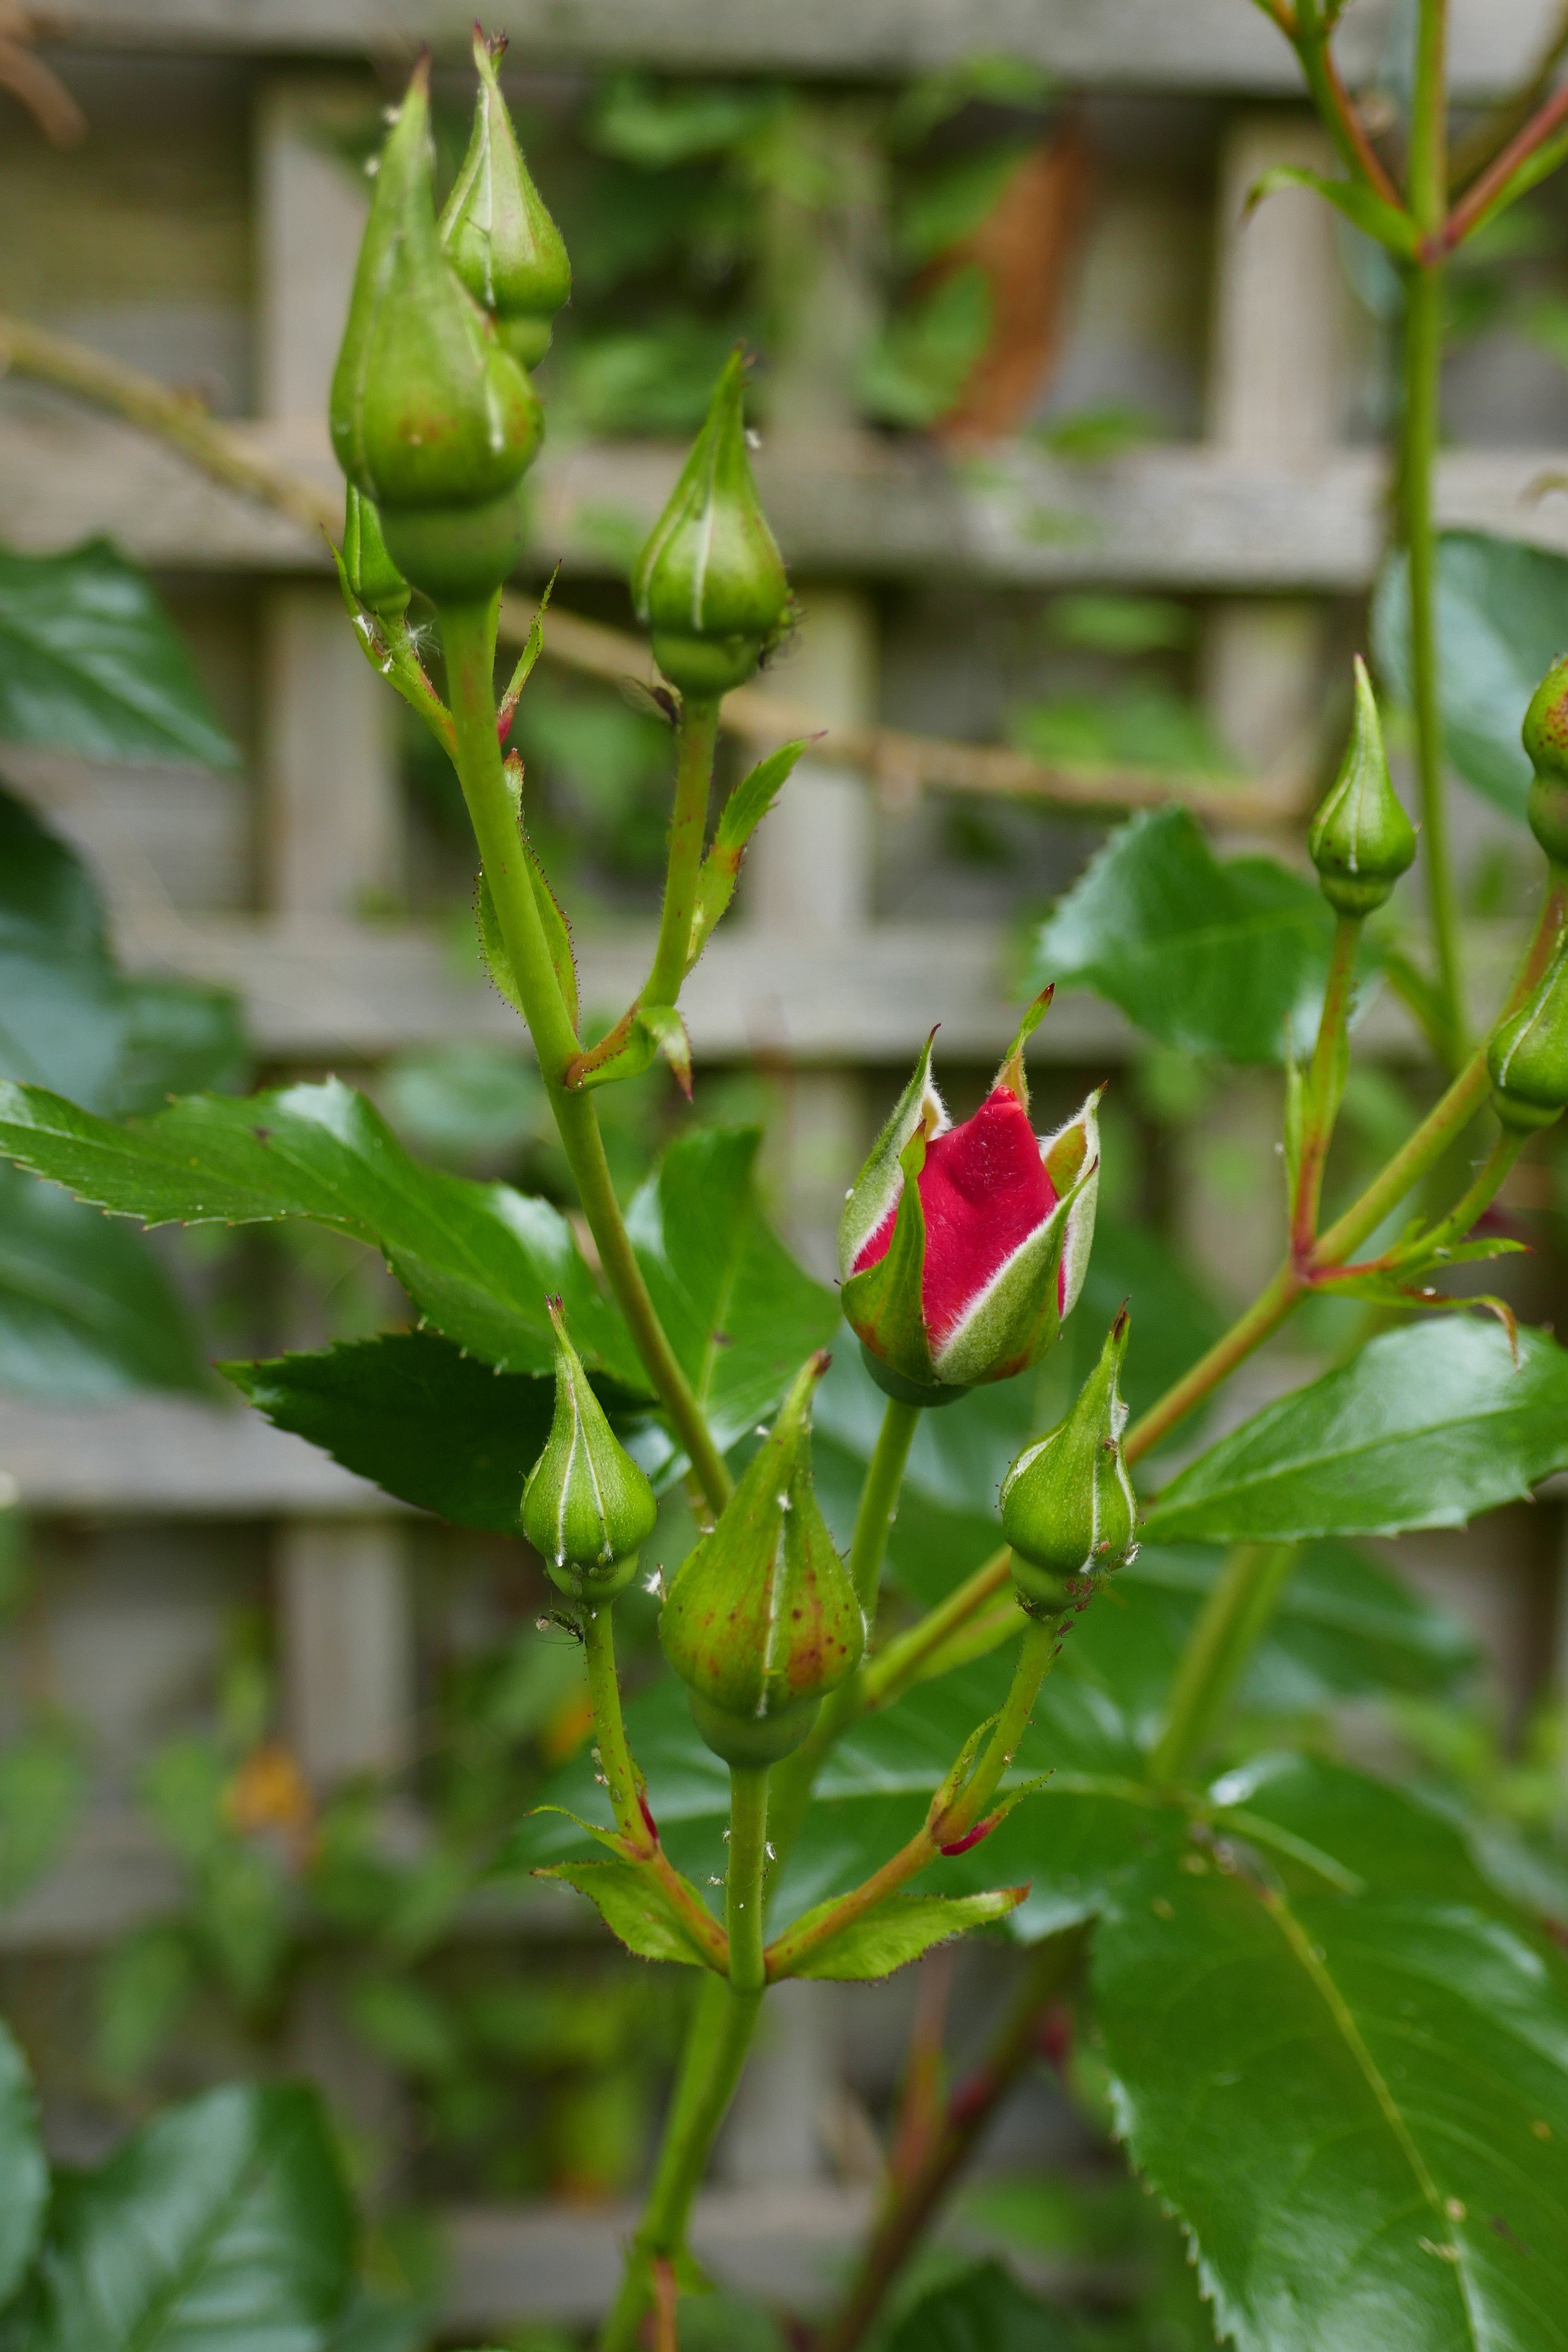 First flower of the spring - a fresh Red Rosebud in the green leaves